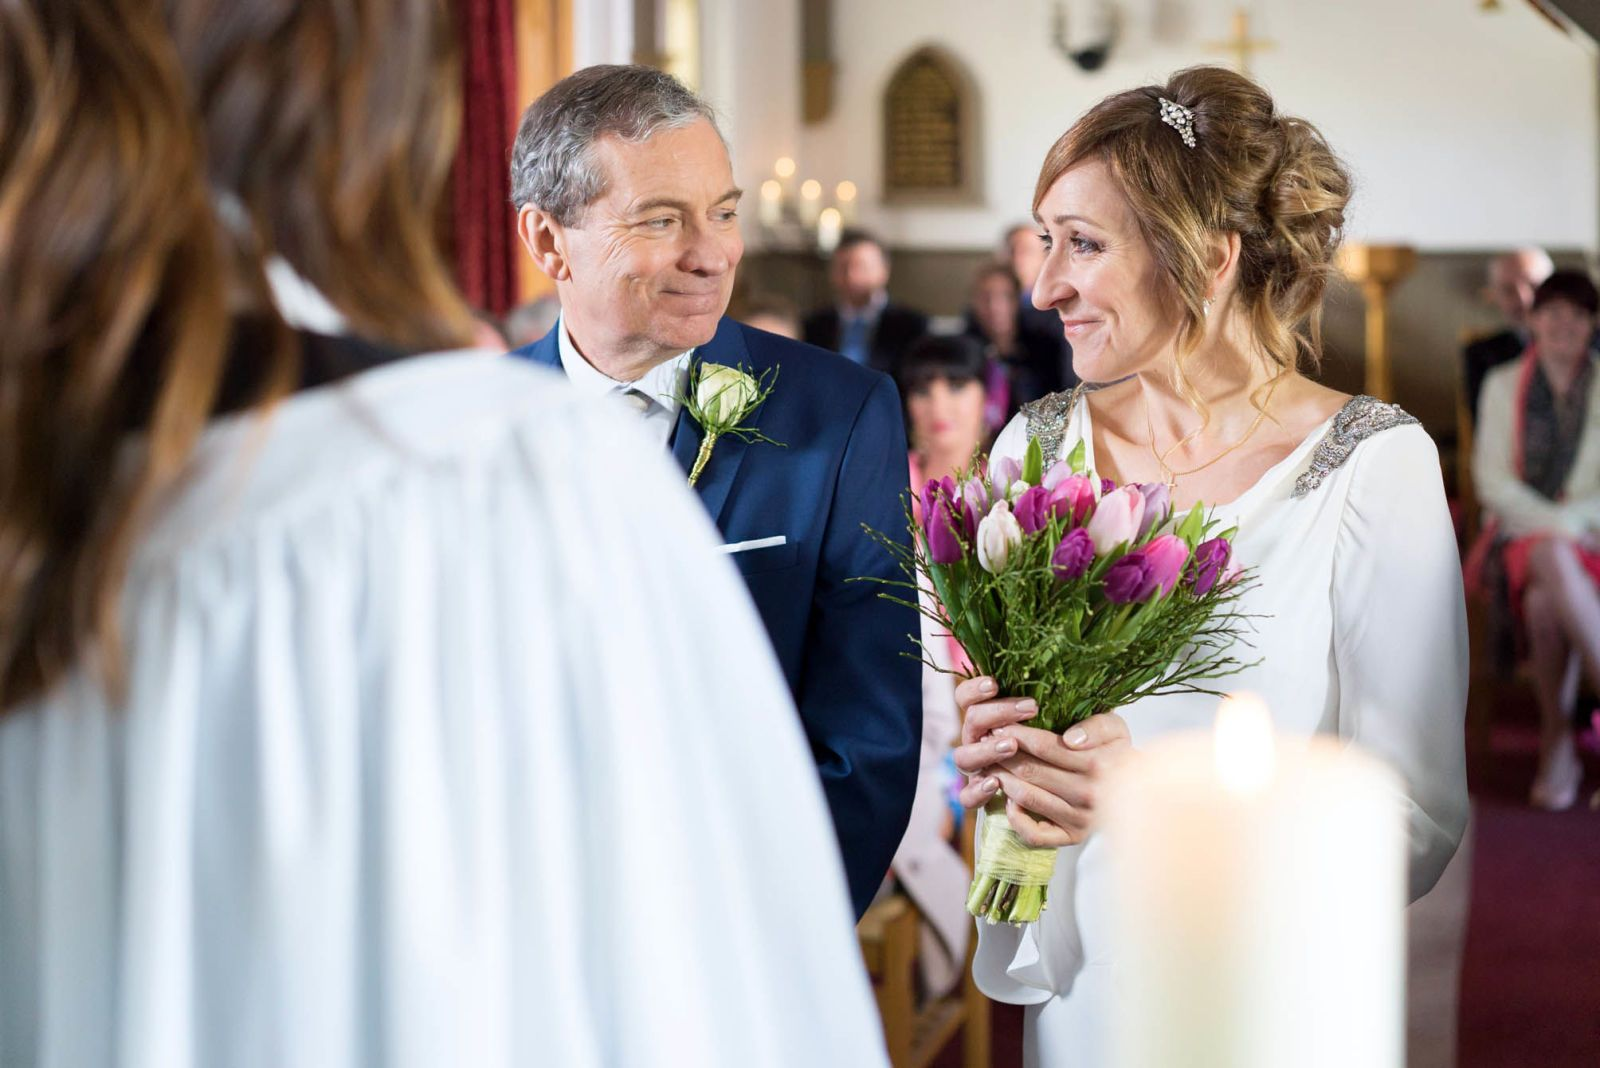 Emmerdale vicar fiasco could ruin Laurel's wedding | Sarjoja